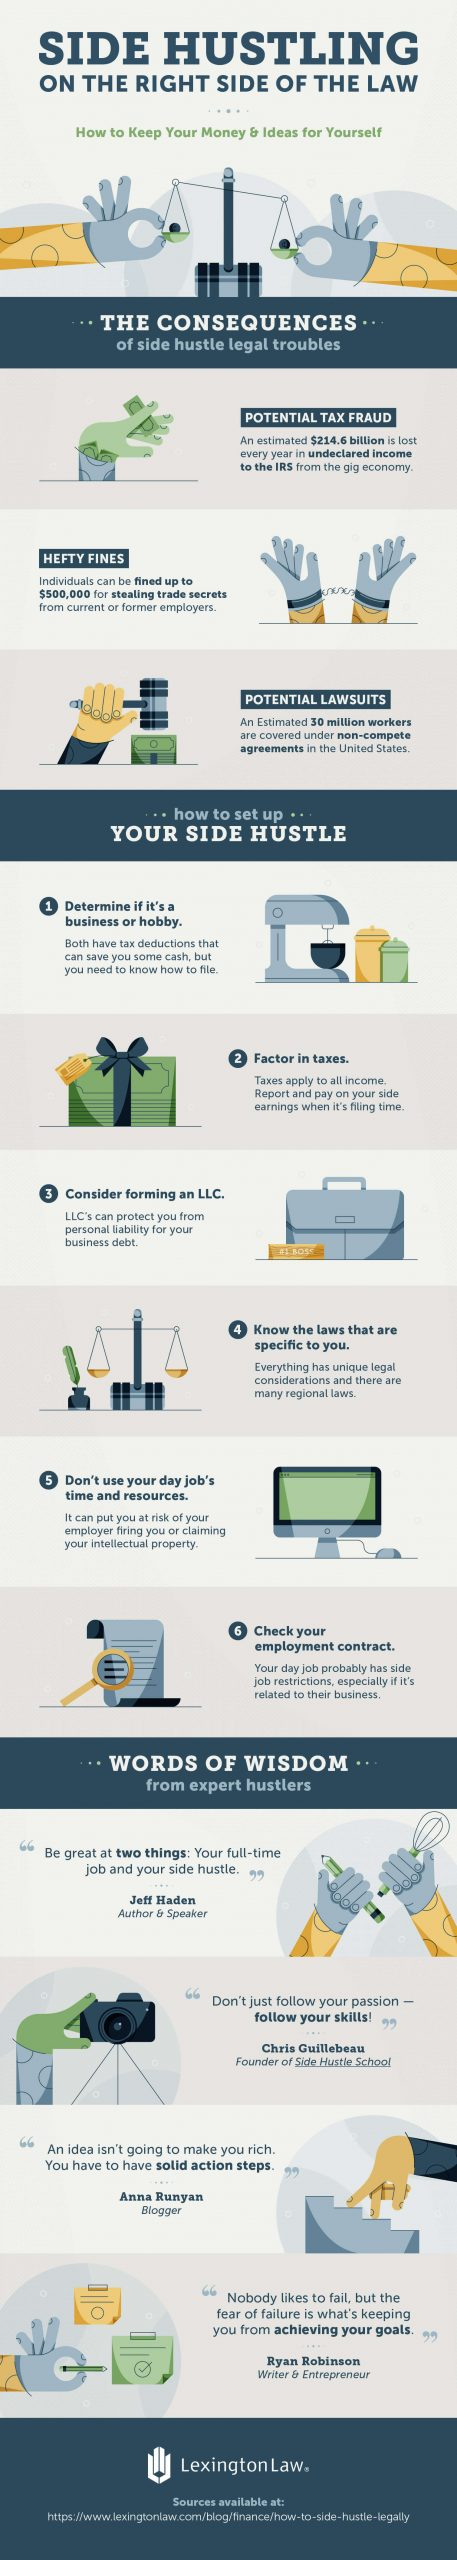 How to Legal Disaster with Side Hustle Infographic compressed